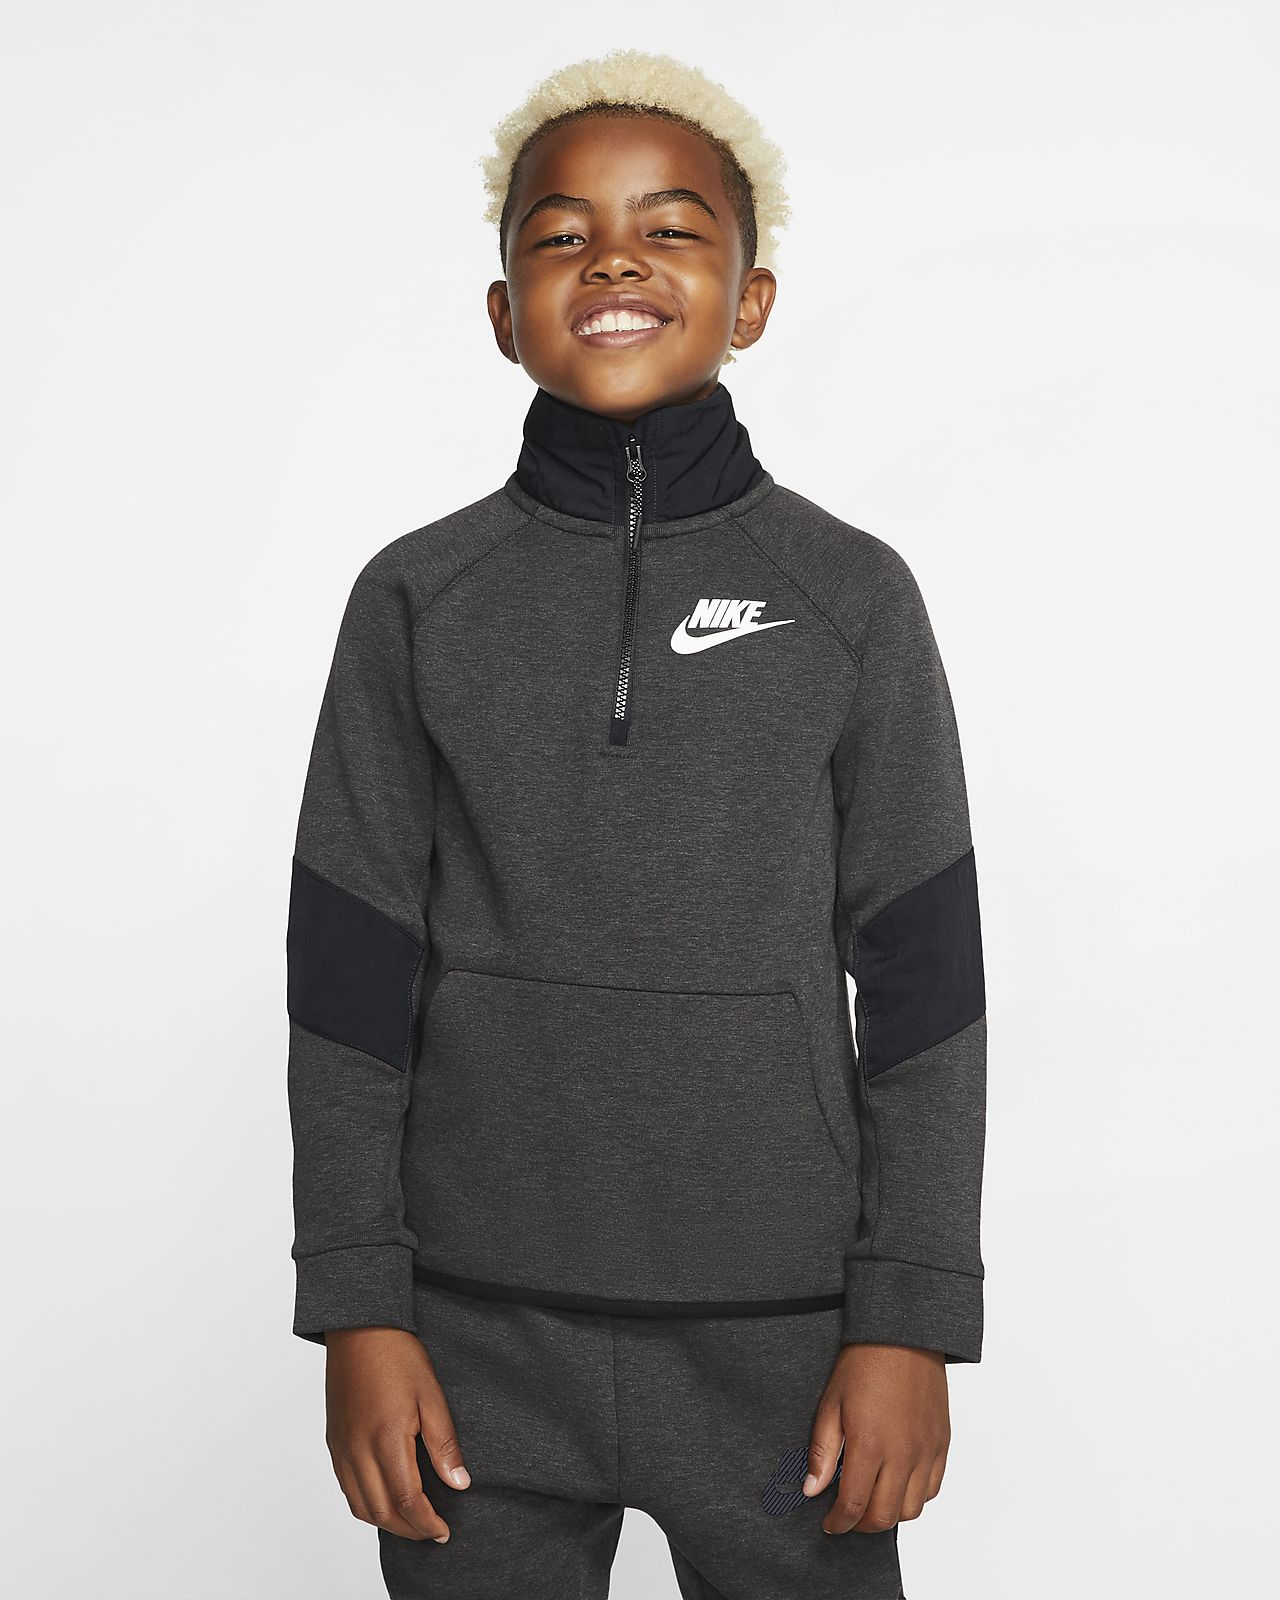 Nike Sportswear Winterized Tech Fleece Part superior de màniga llarga - Nen/a